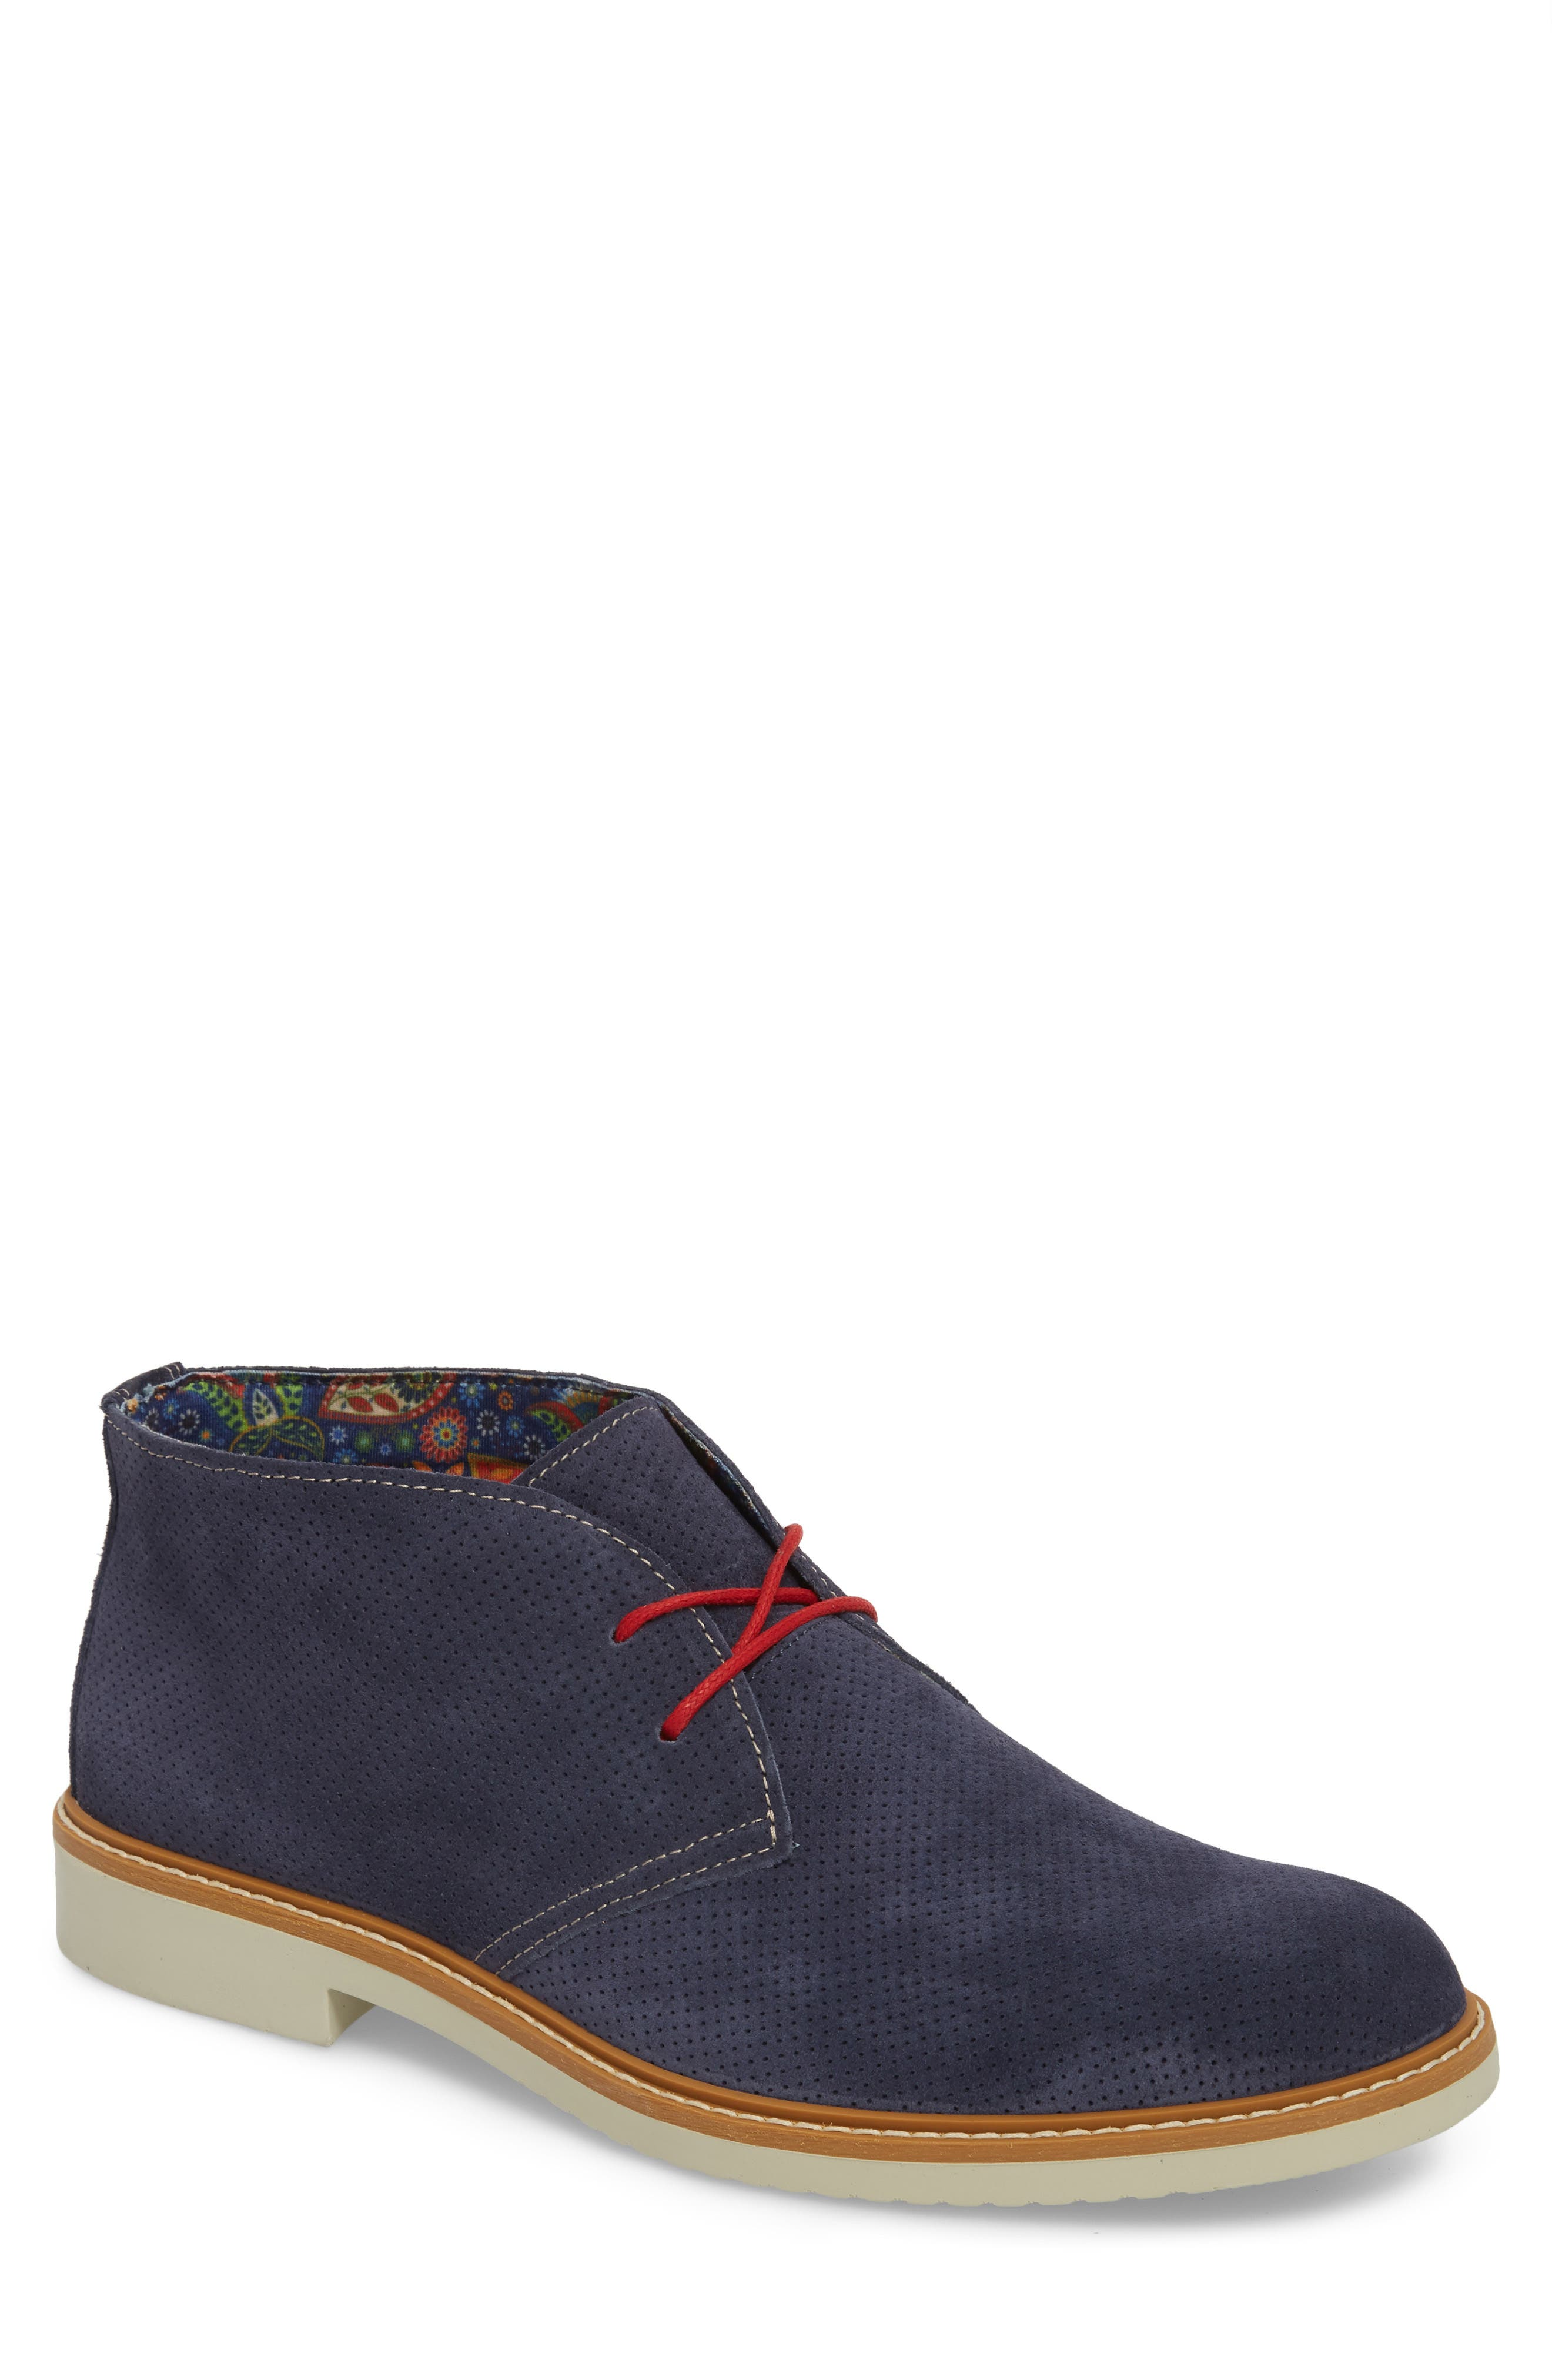 Bayside Perforated Chukka Boot,                         Main,                         color, Blue Suede